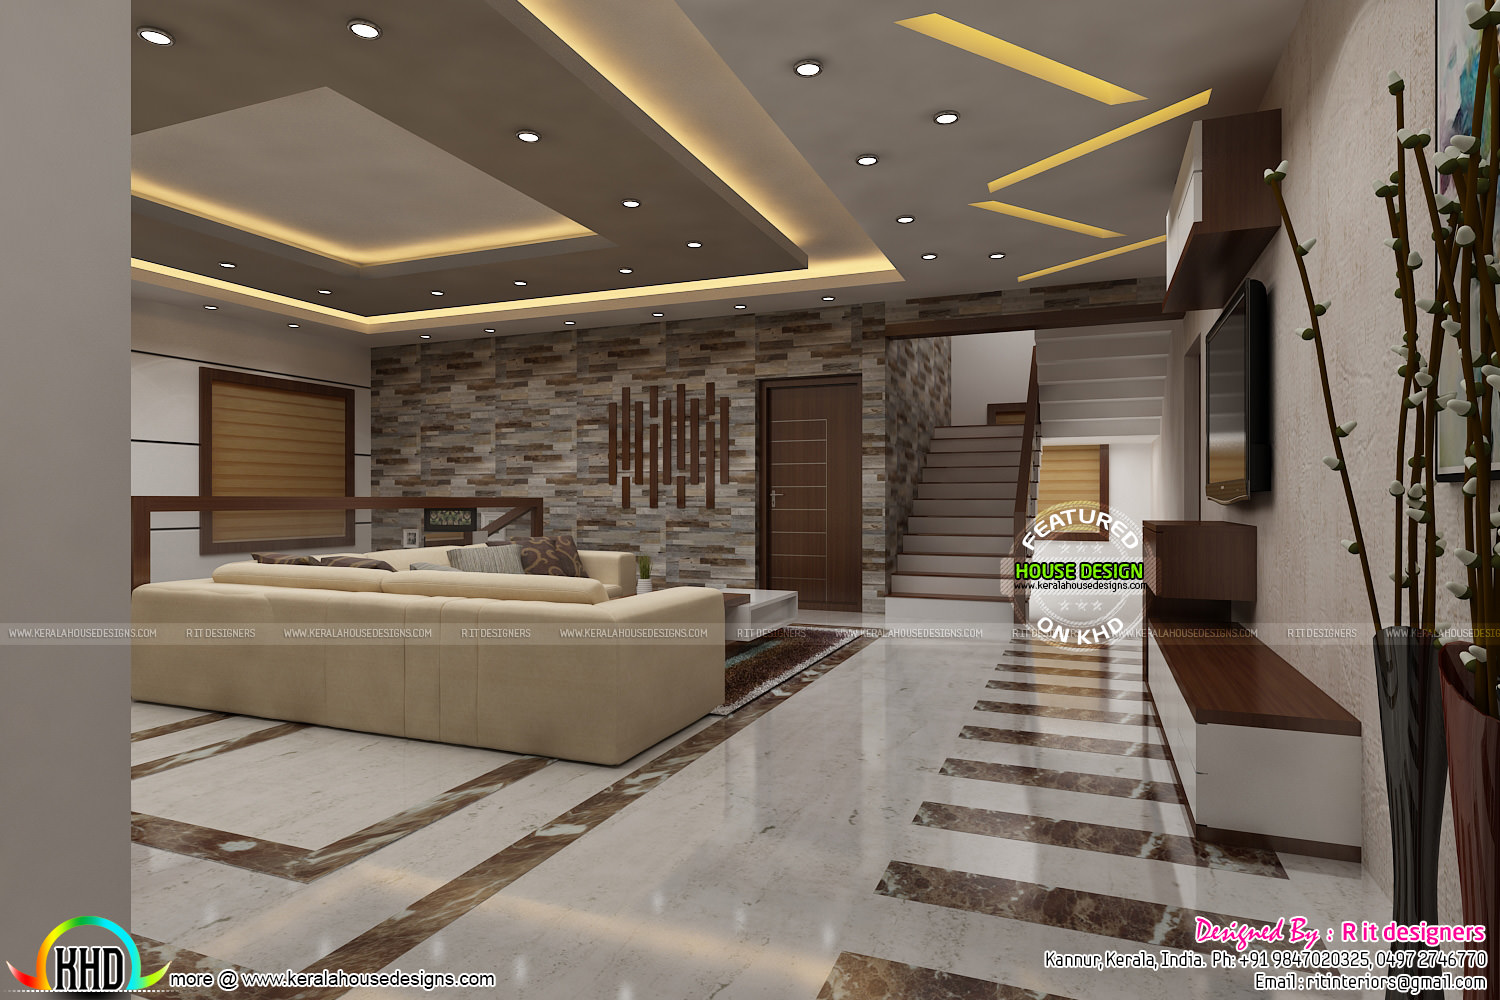 Most modern kerala living room interior kerala home for Kerala interior designs